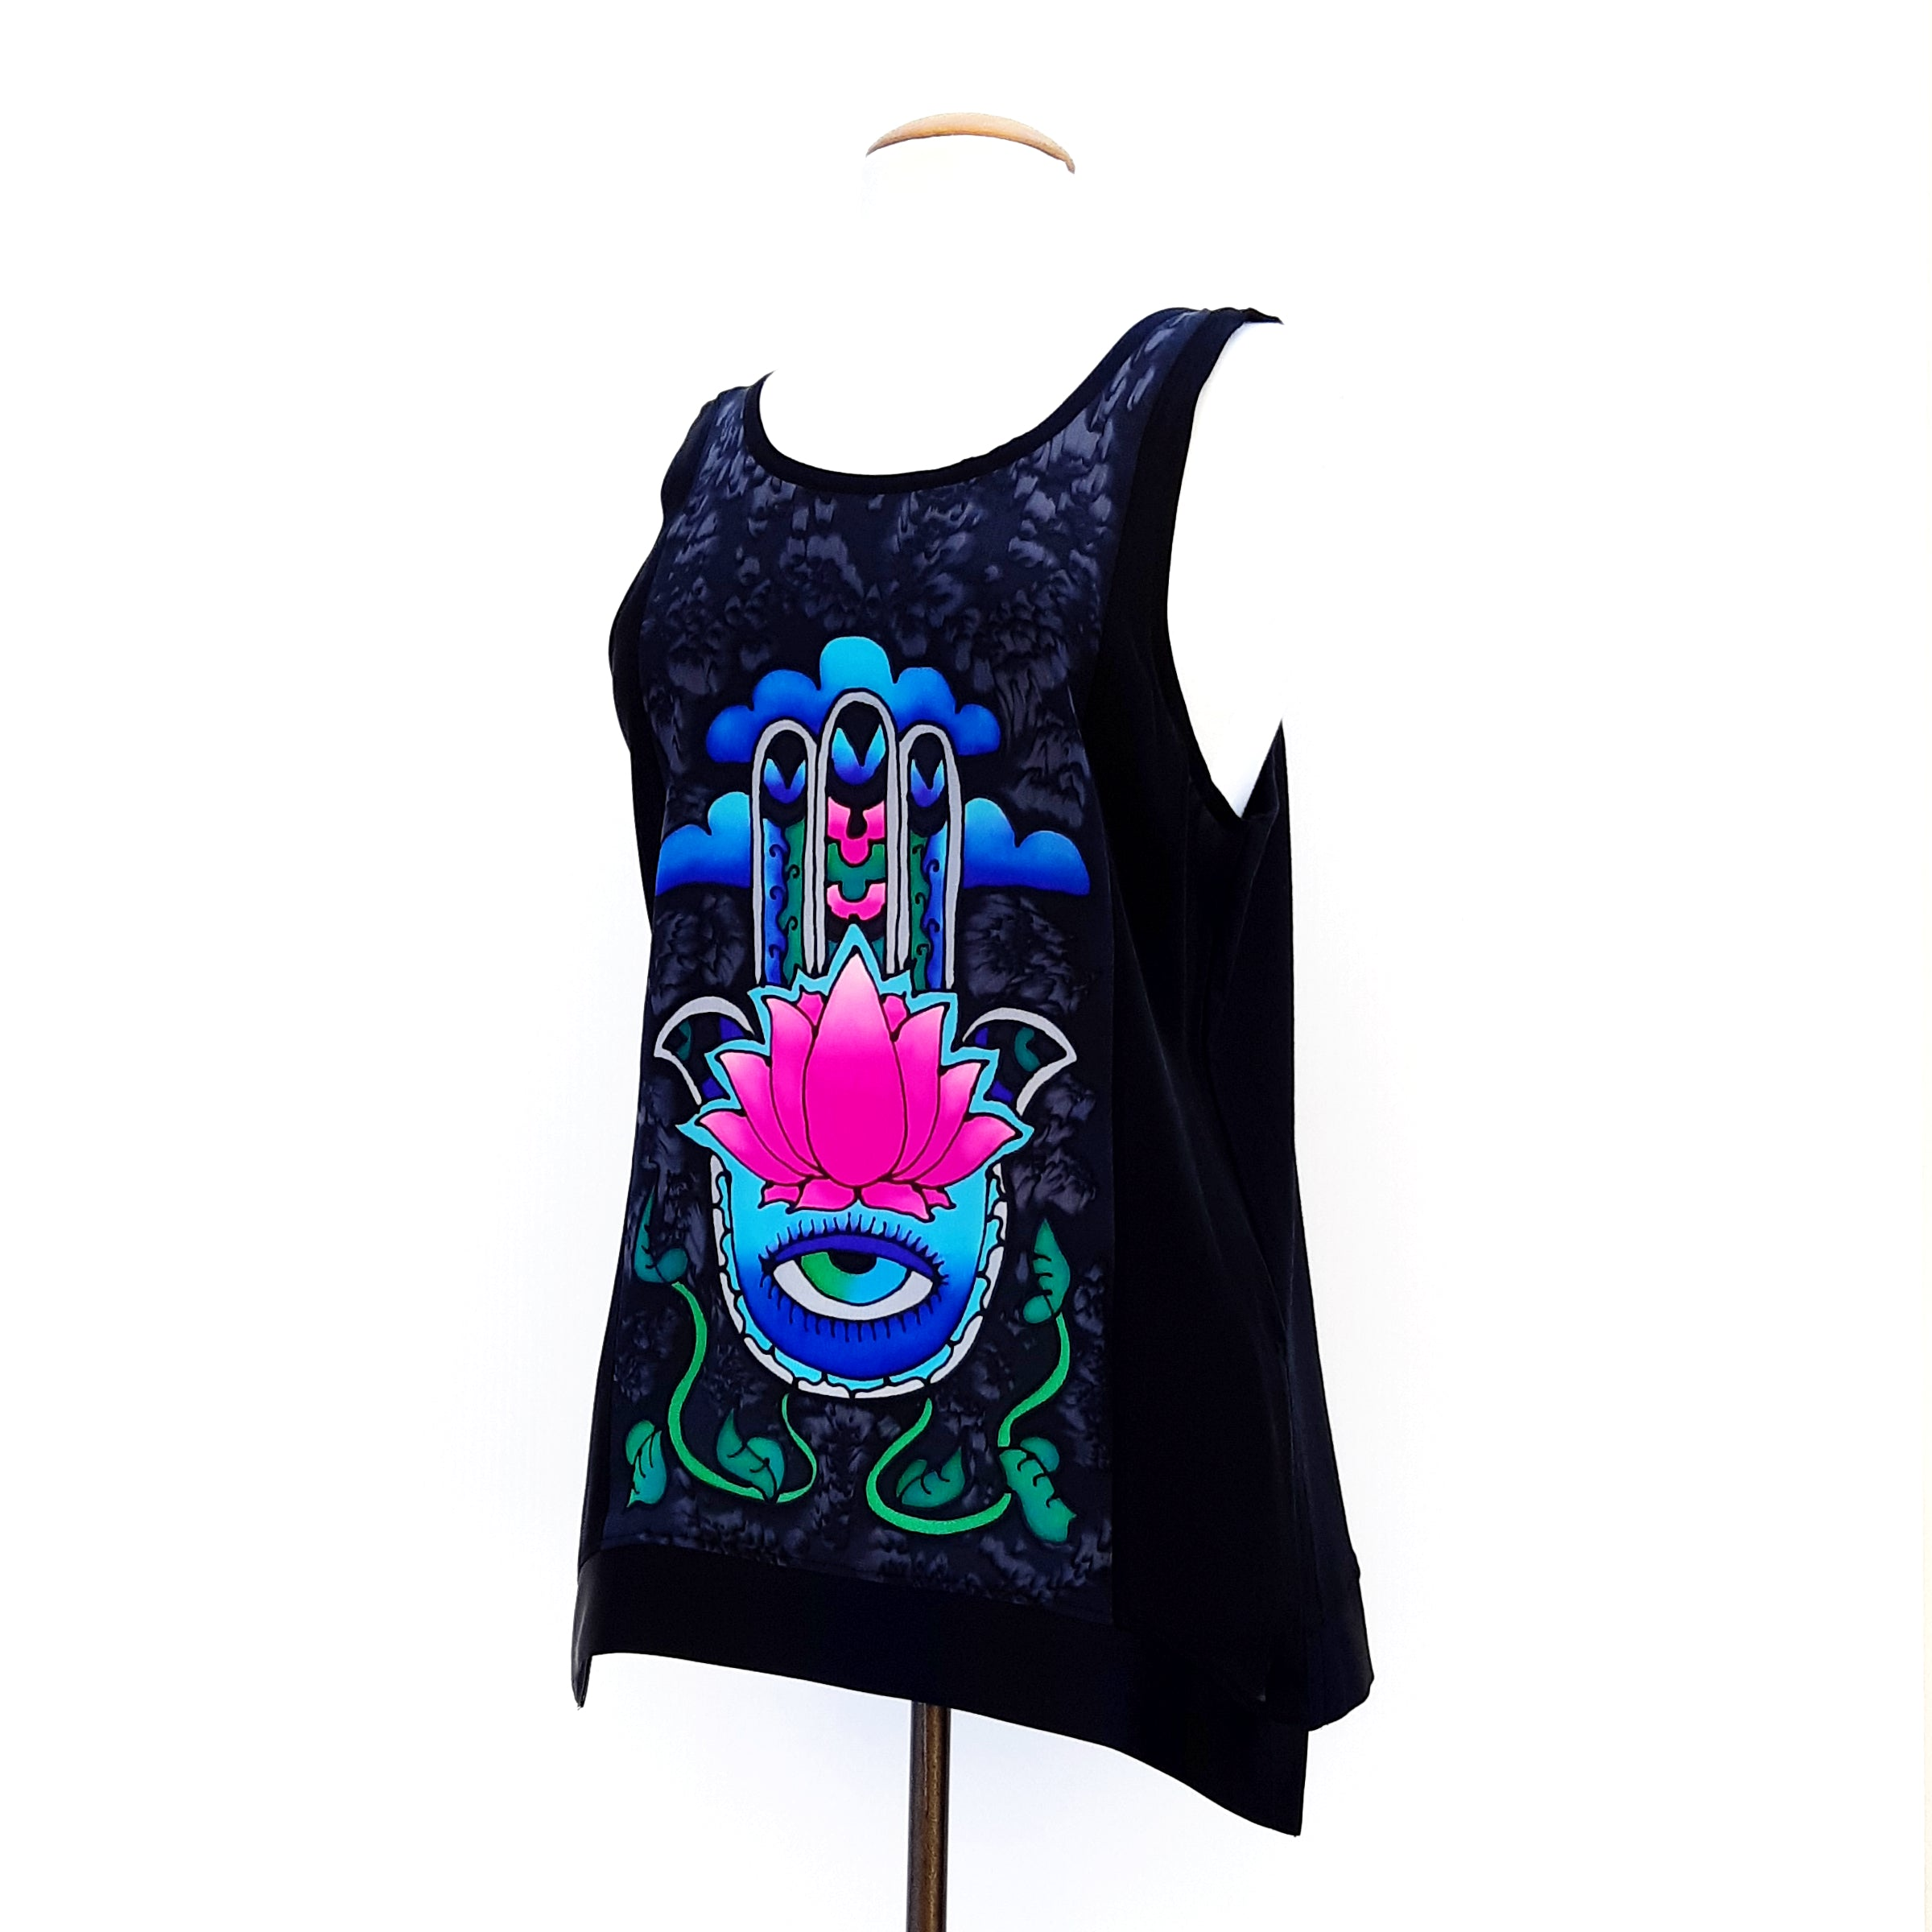 painted silk ladies tank top